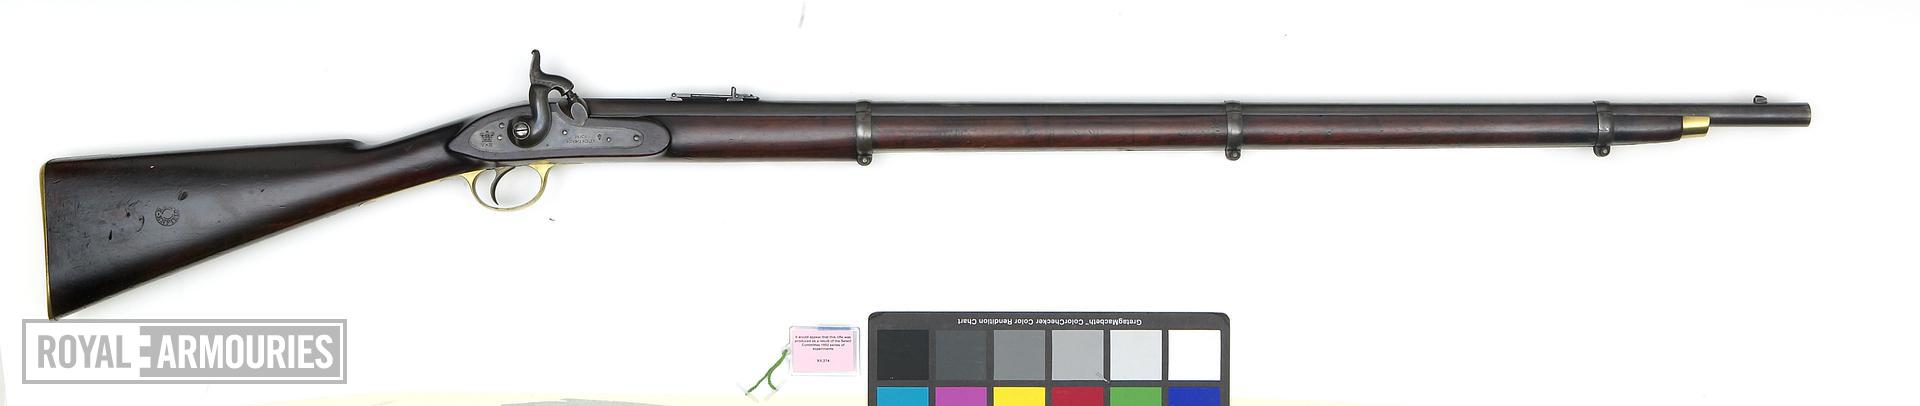 Percussion muzzle-loading military rifle-musket - Pattern 1853 Percussion military rifled musket Pattern of 1853, experimental, possibly created as part of the 1852 series of experiments under the Ordnance Select Committee. Left hand side of the butt stamped 'No 2'; underside of stock stamped G STAINTON; underside of barrel stamped '2'; inside of lockplate stamped '2' and 'GS'. Lock dated 1853. English, dated 1853